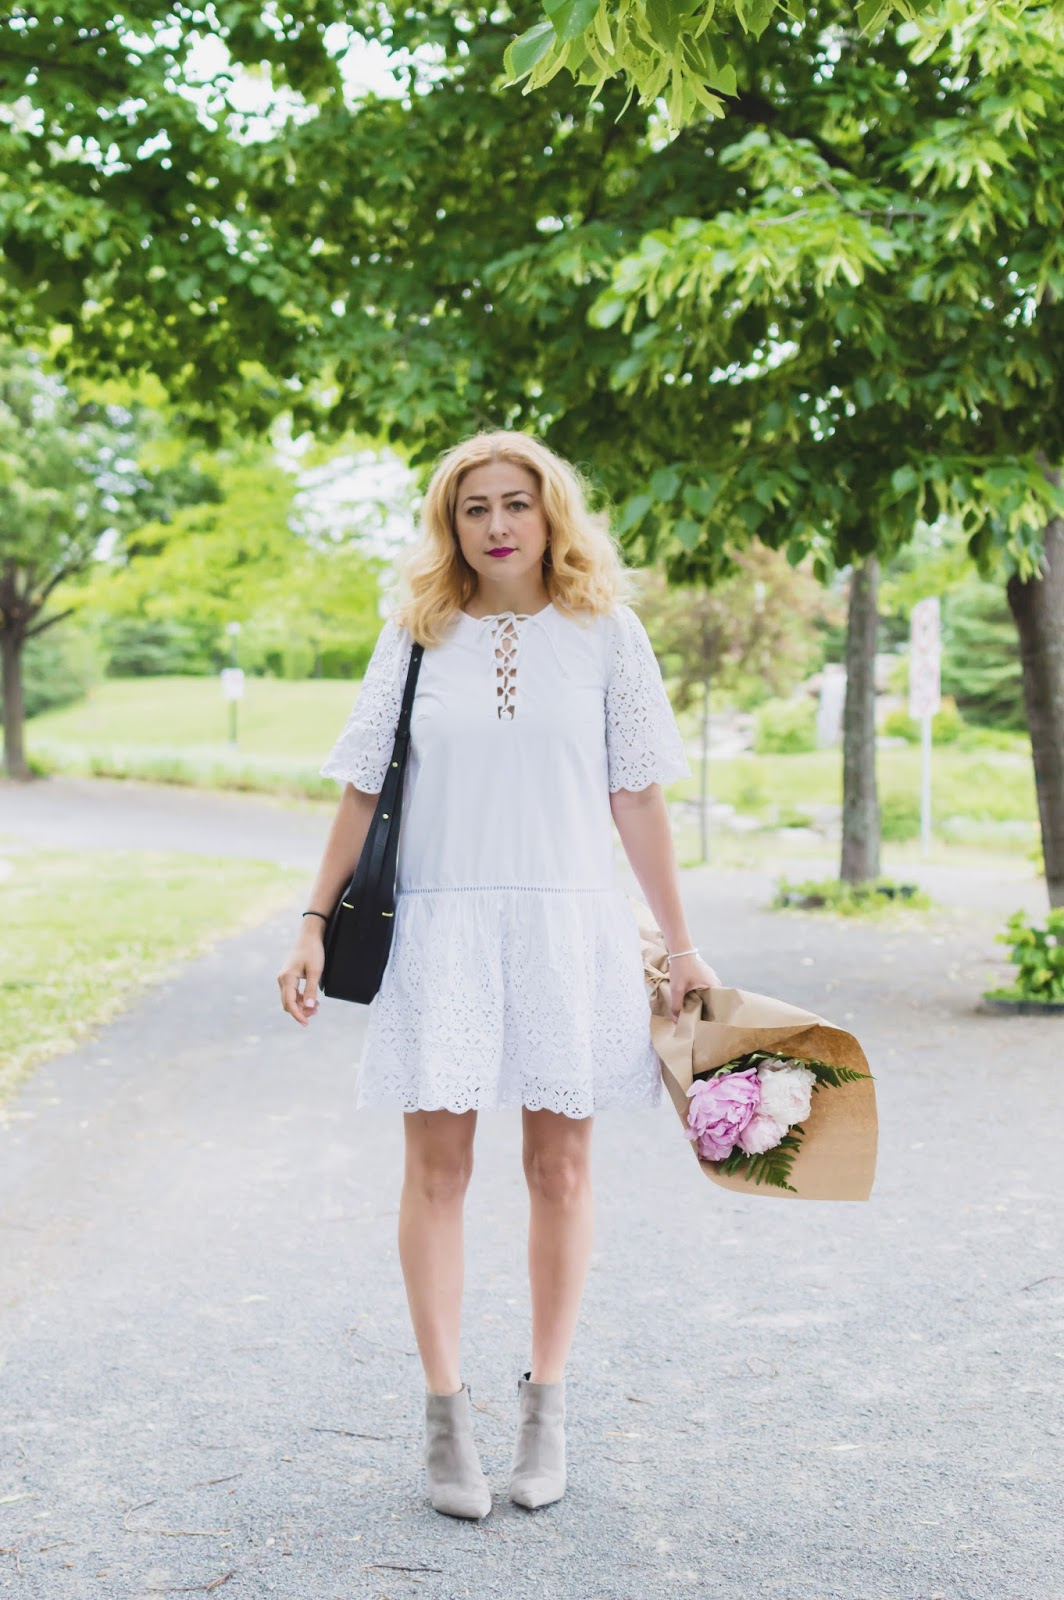 How to style a white dress